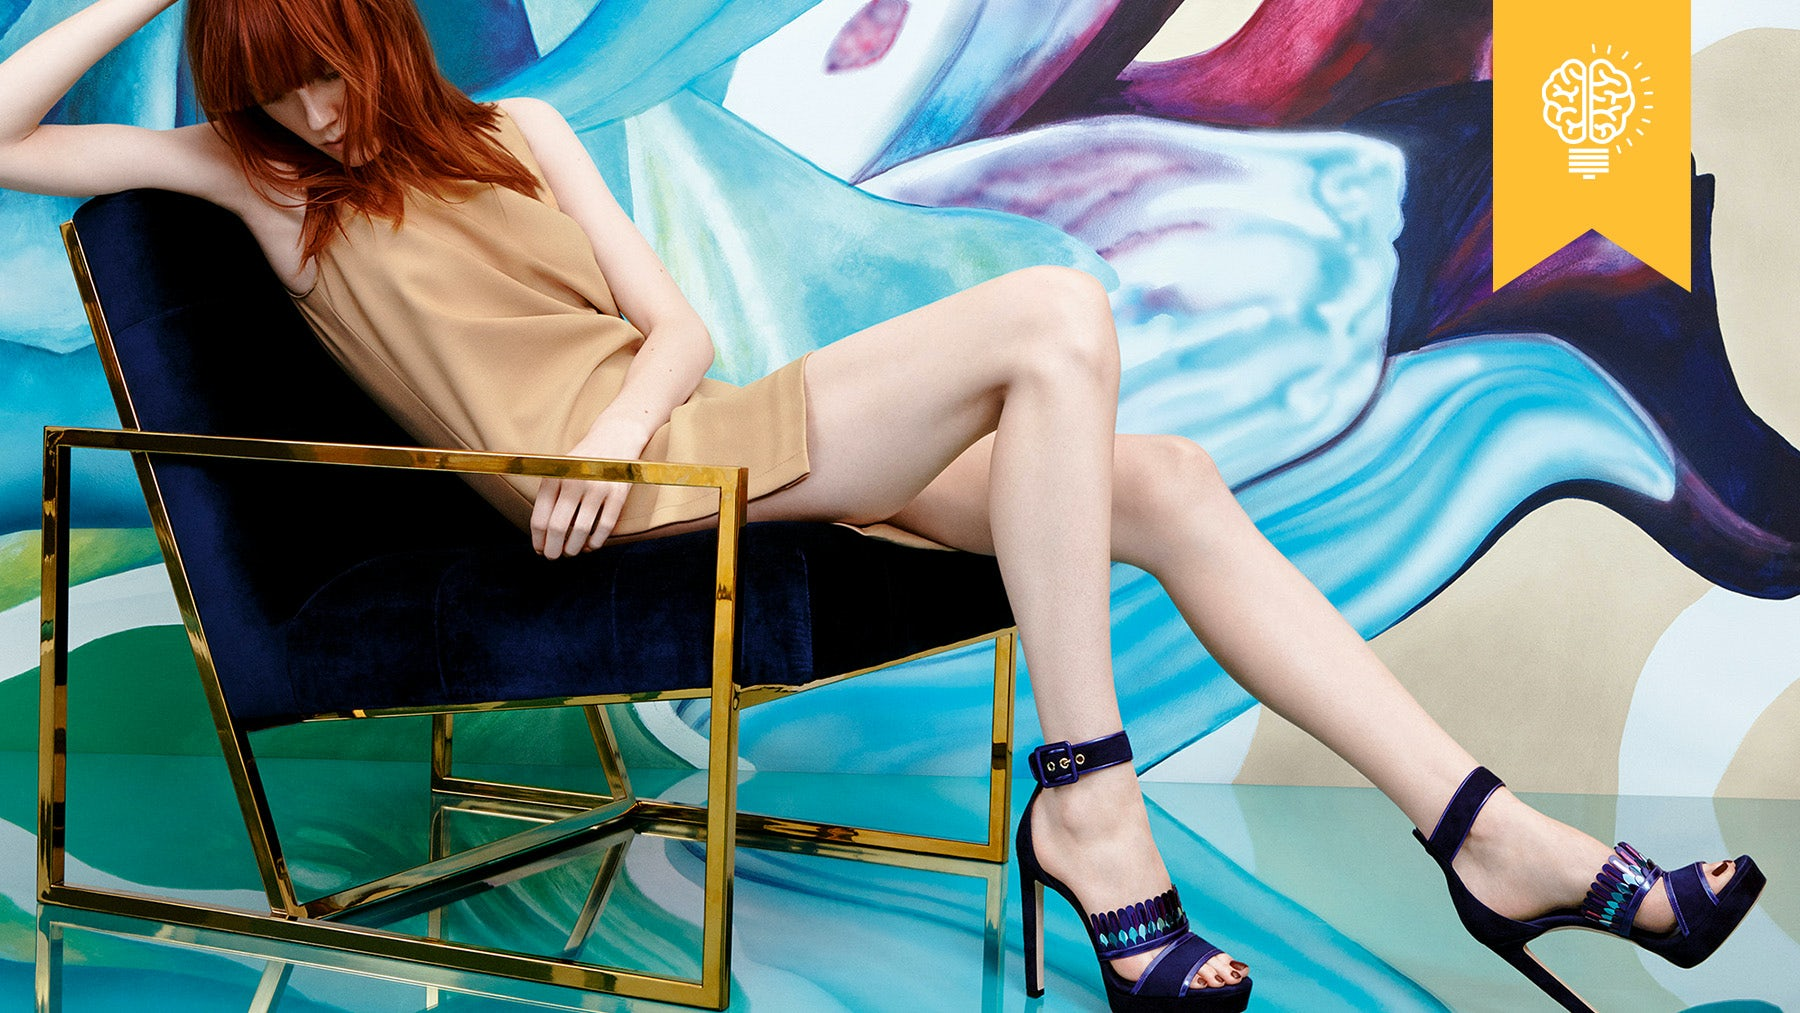 Jimmy Choo's Spring/Summer 2017 campaign | Source: Courtesy